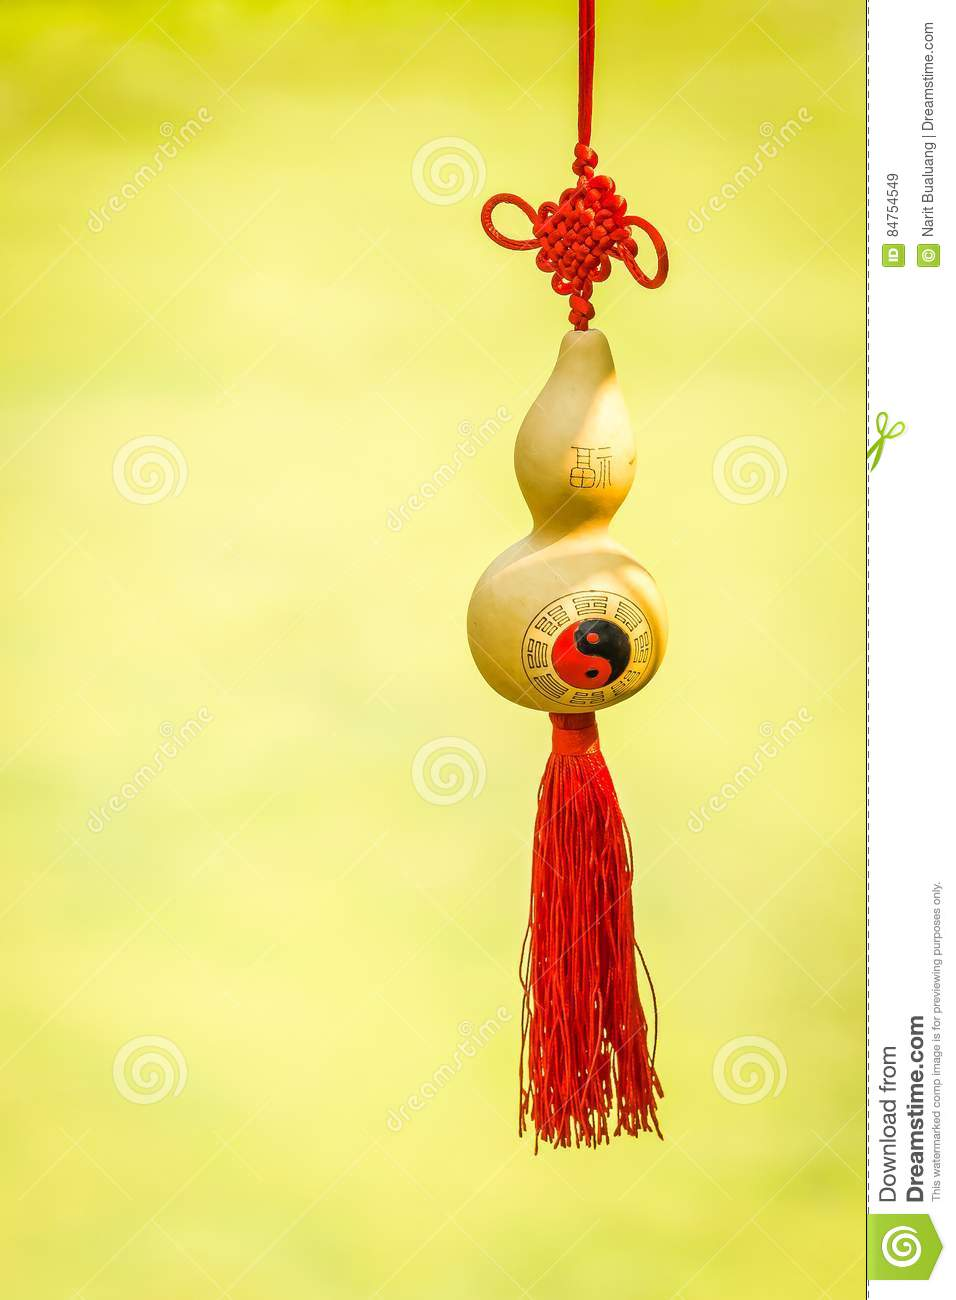 Golden Gourd For Chinese New Year Stock Image Image Of Peaceful